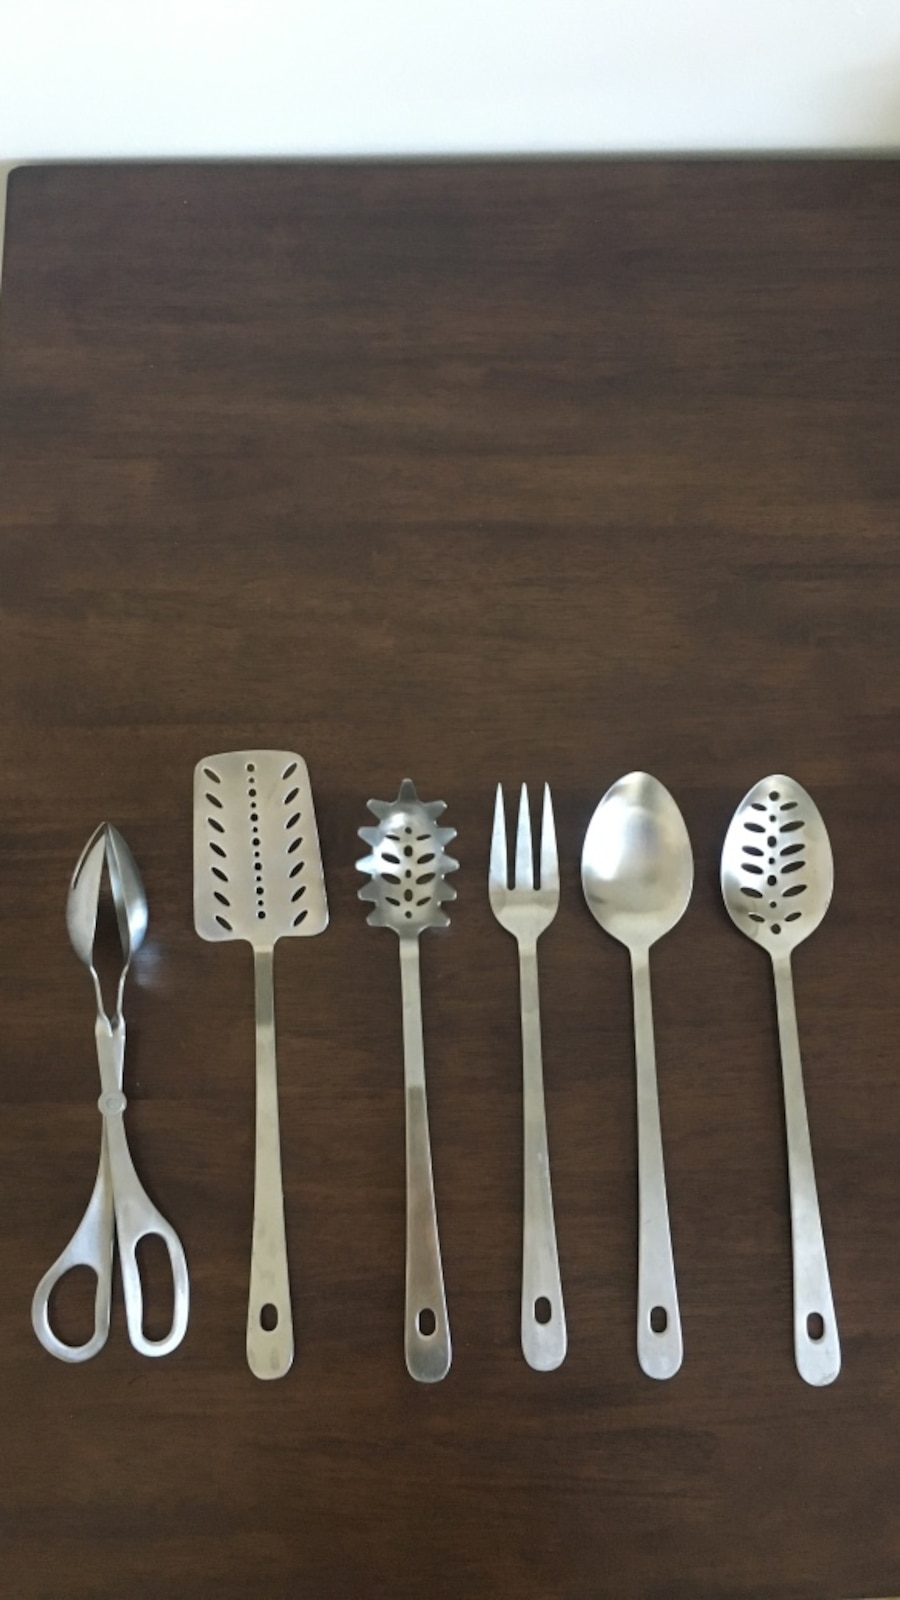 Amco stainless steel utensil set